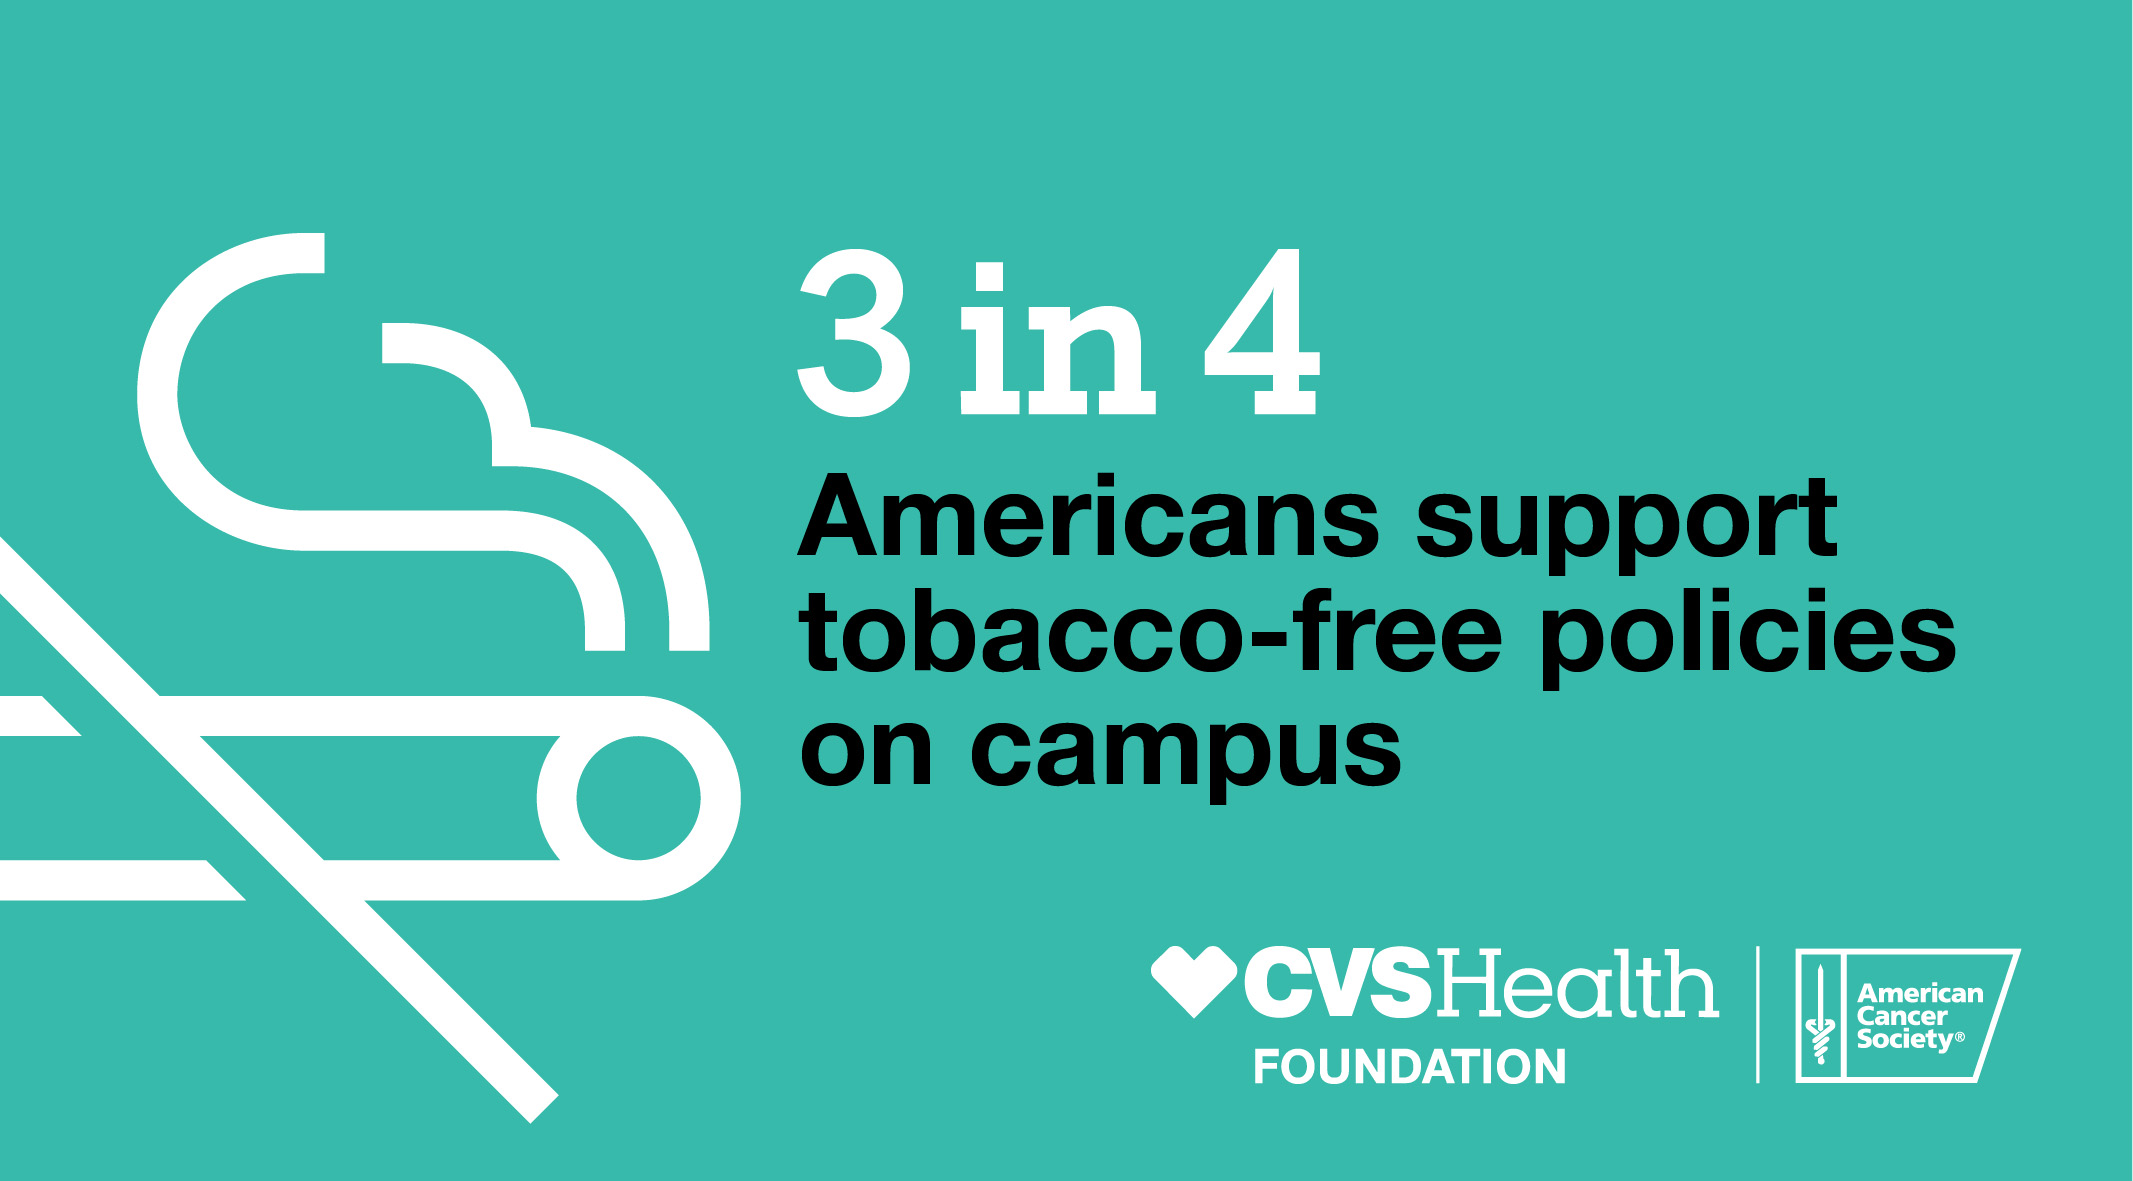 3 in 4 Americans support tobacco-free policies on campus.